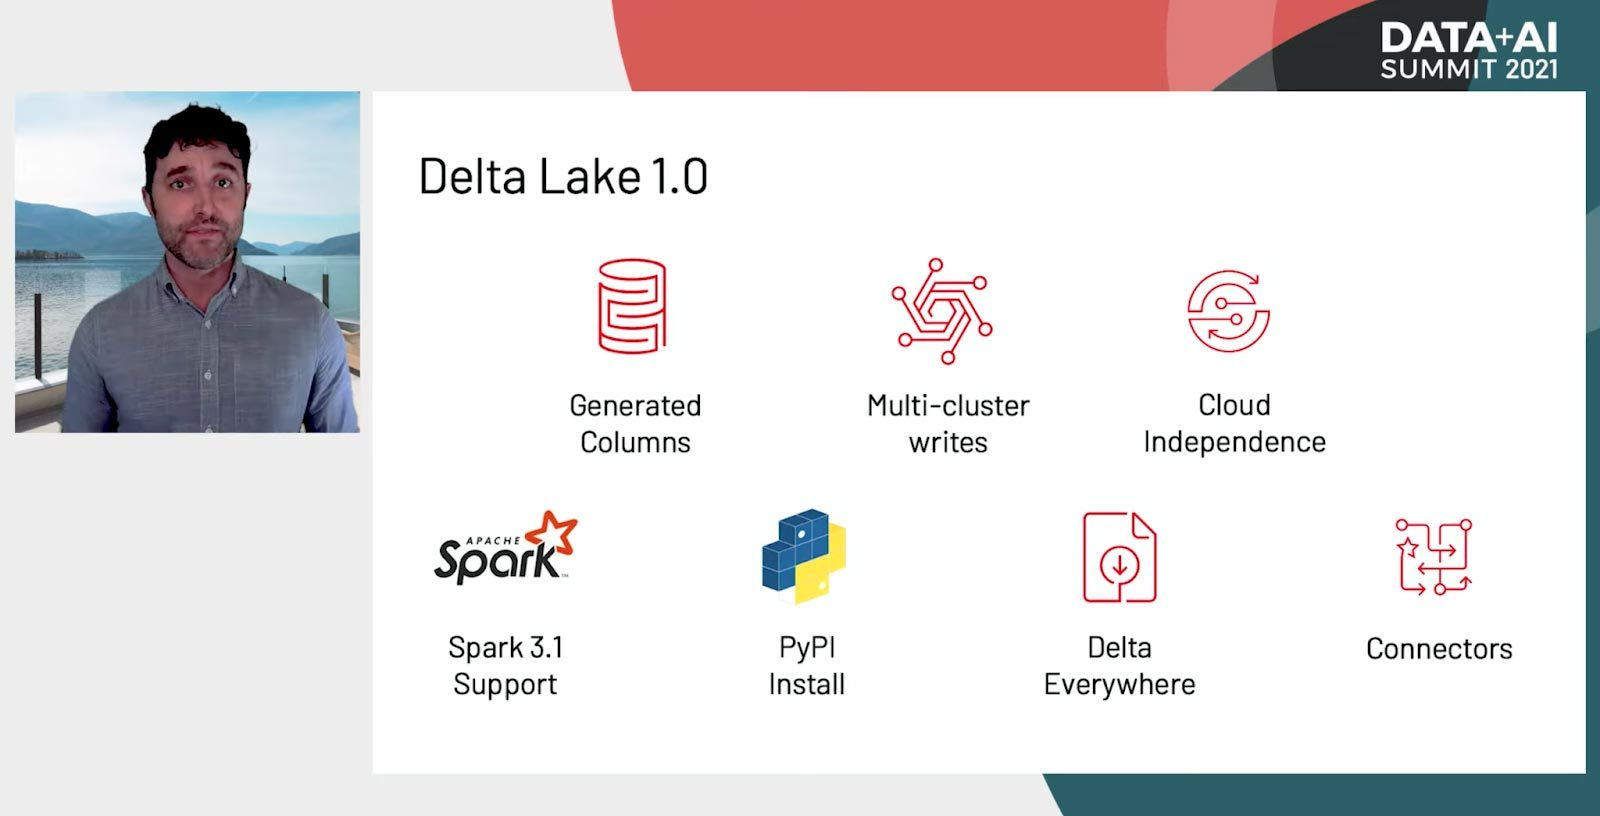 Delta Lake 1.0 announcement from the Wednesday AM Keynote